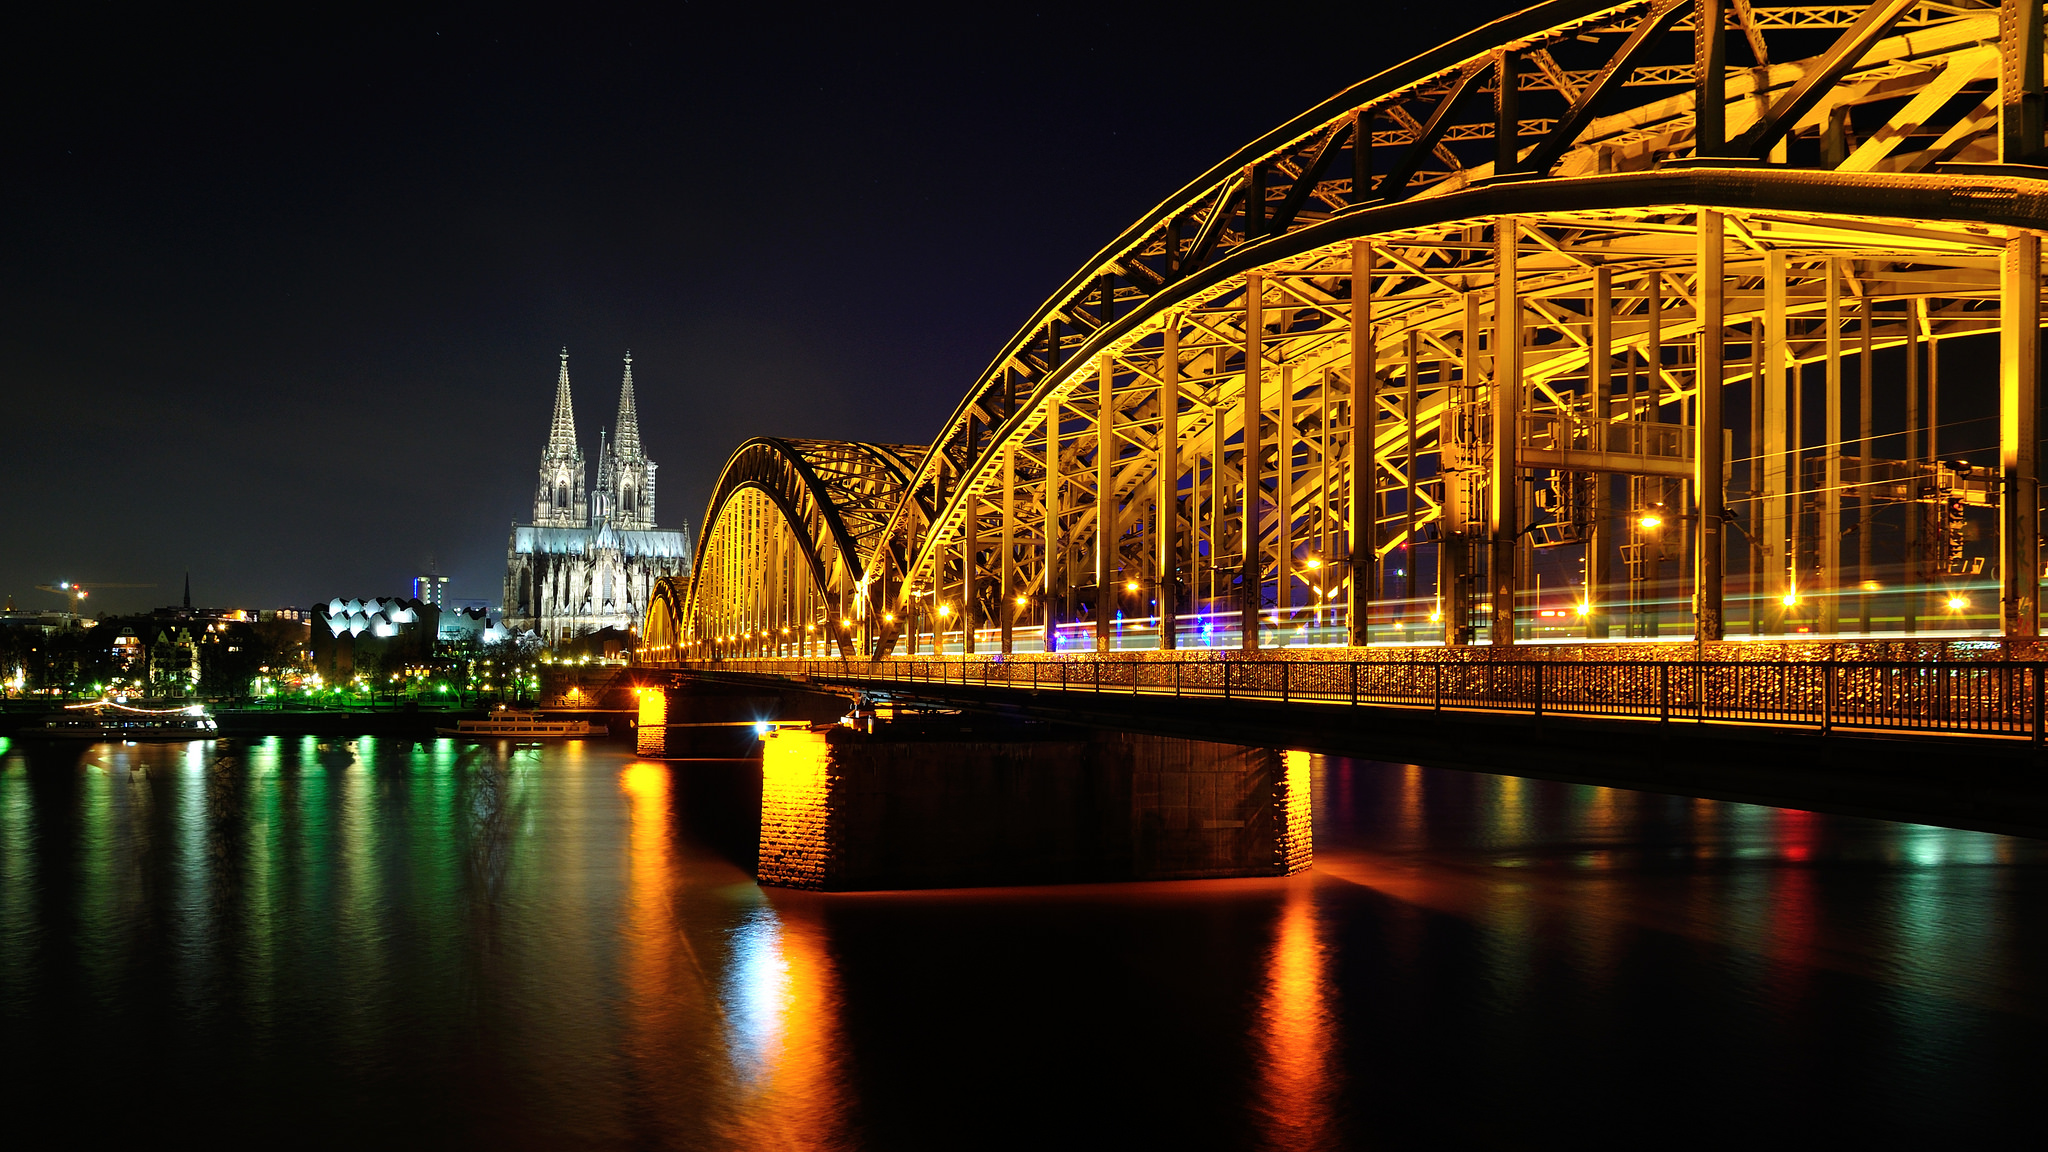 Cologne, Germany. Photo: Eric Bauer CC BY-SA 2.0